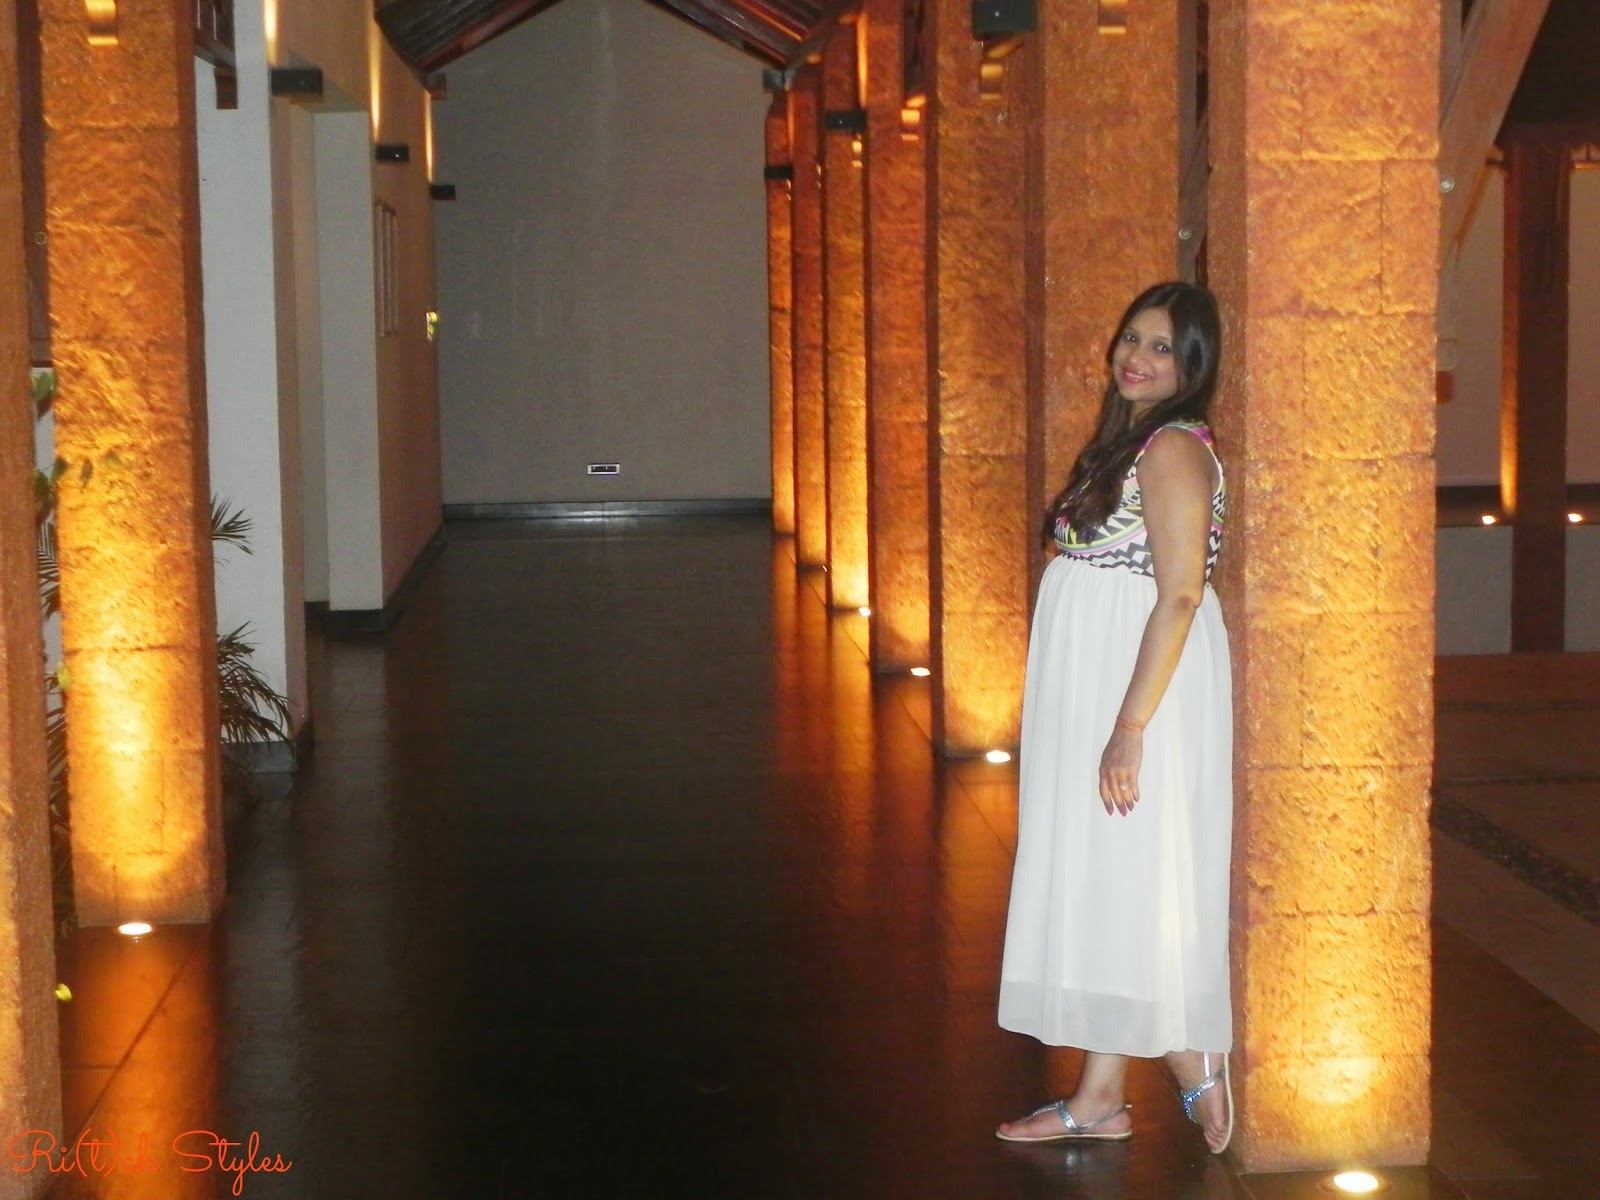 ri t ch styles indian fashion beauty and lifestyle blog july 2014